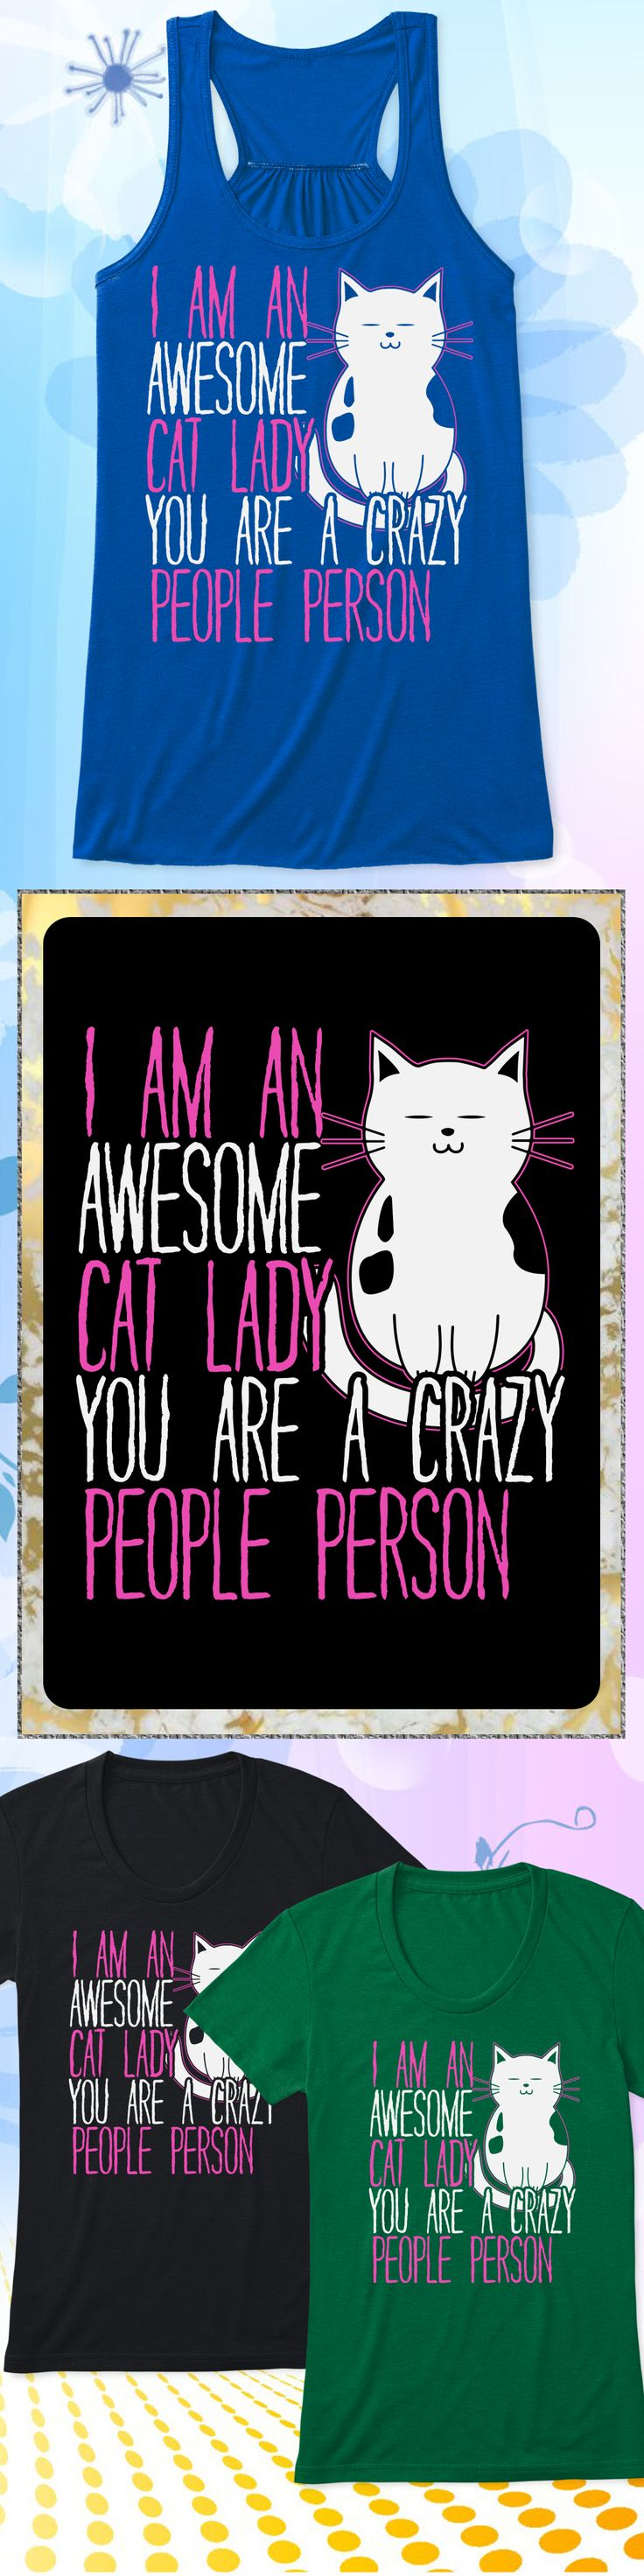 Awesome Cat Lady - Limited edition. Order 2 or more for friends/family & save on shipping! Makes a great gift!